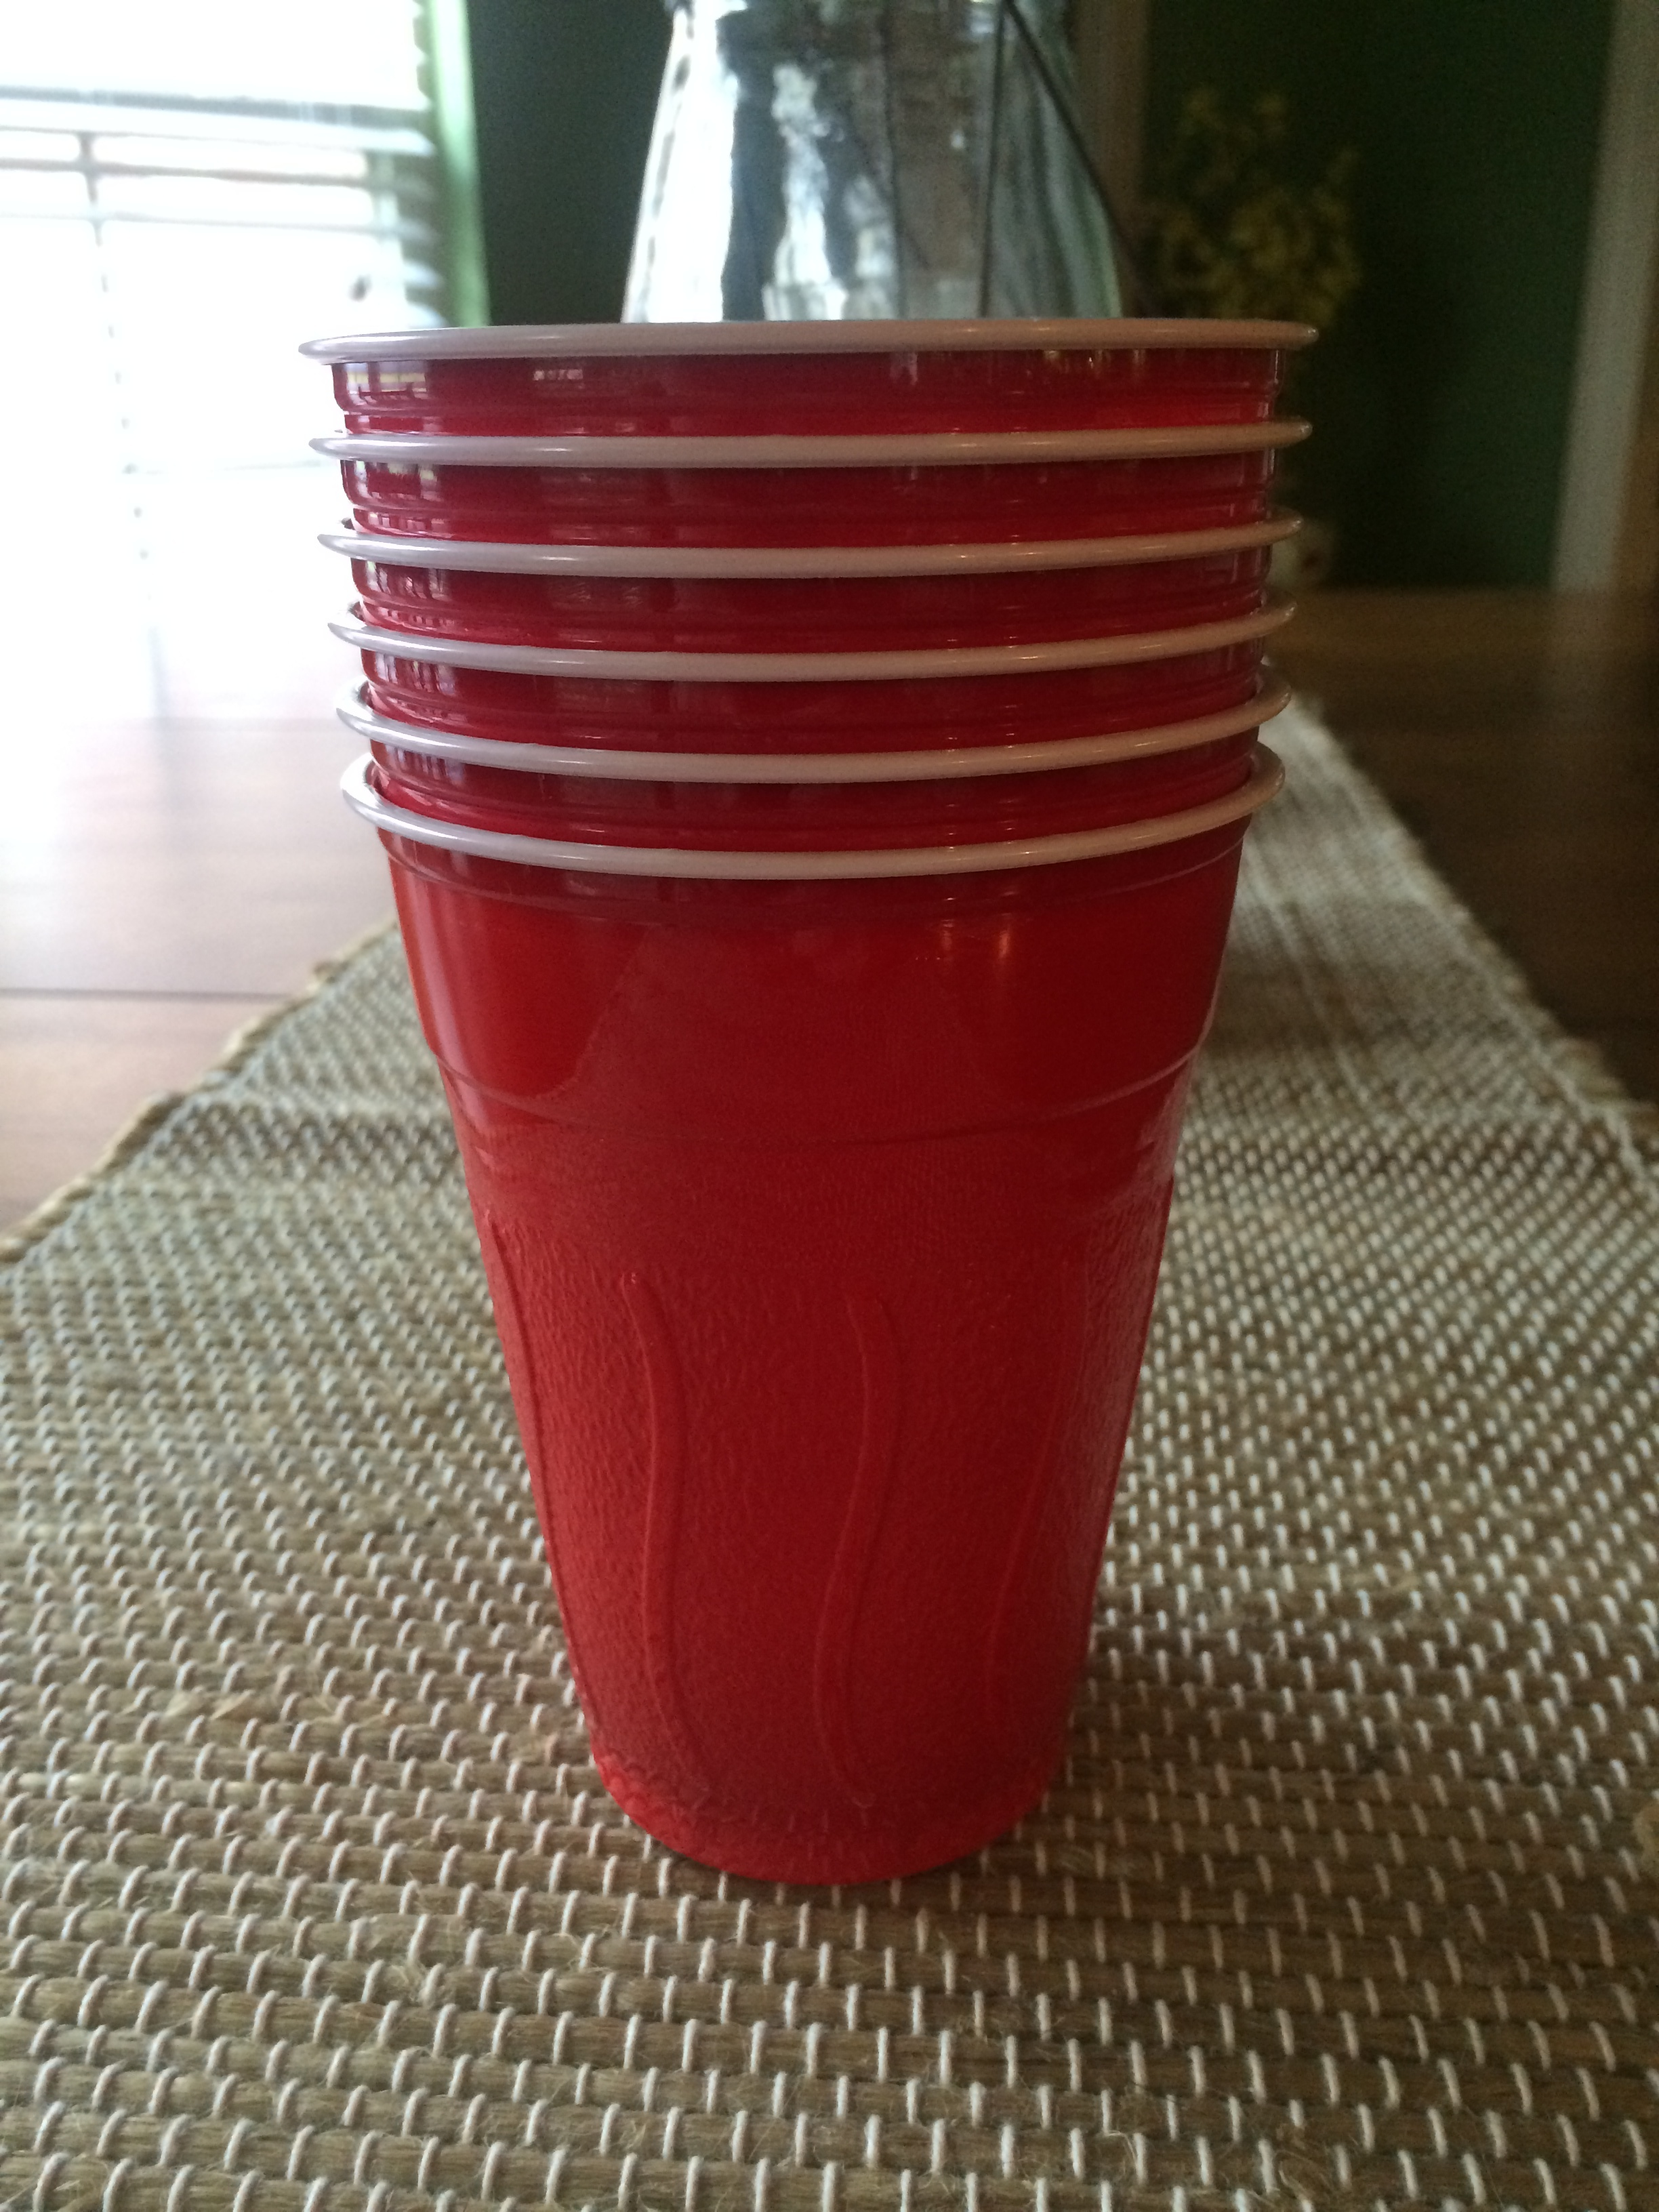 Ways to combat the stomach bug use red solo cups